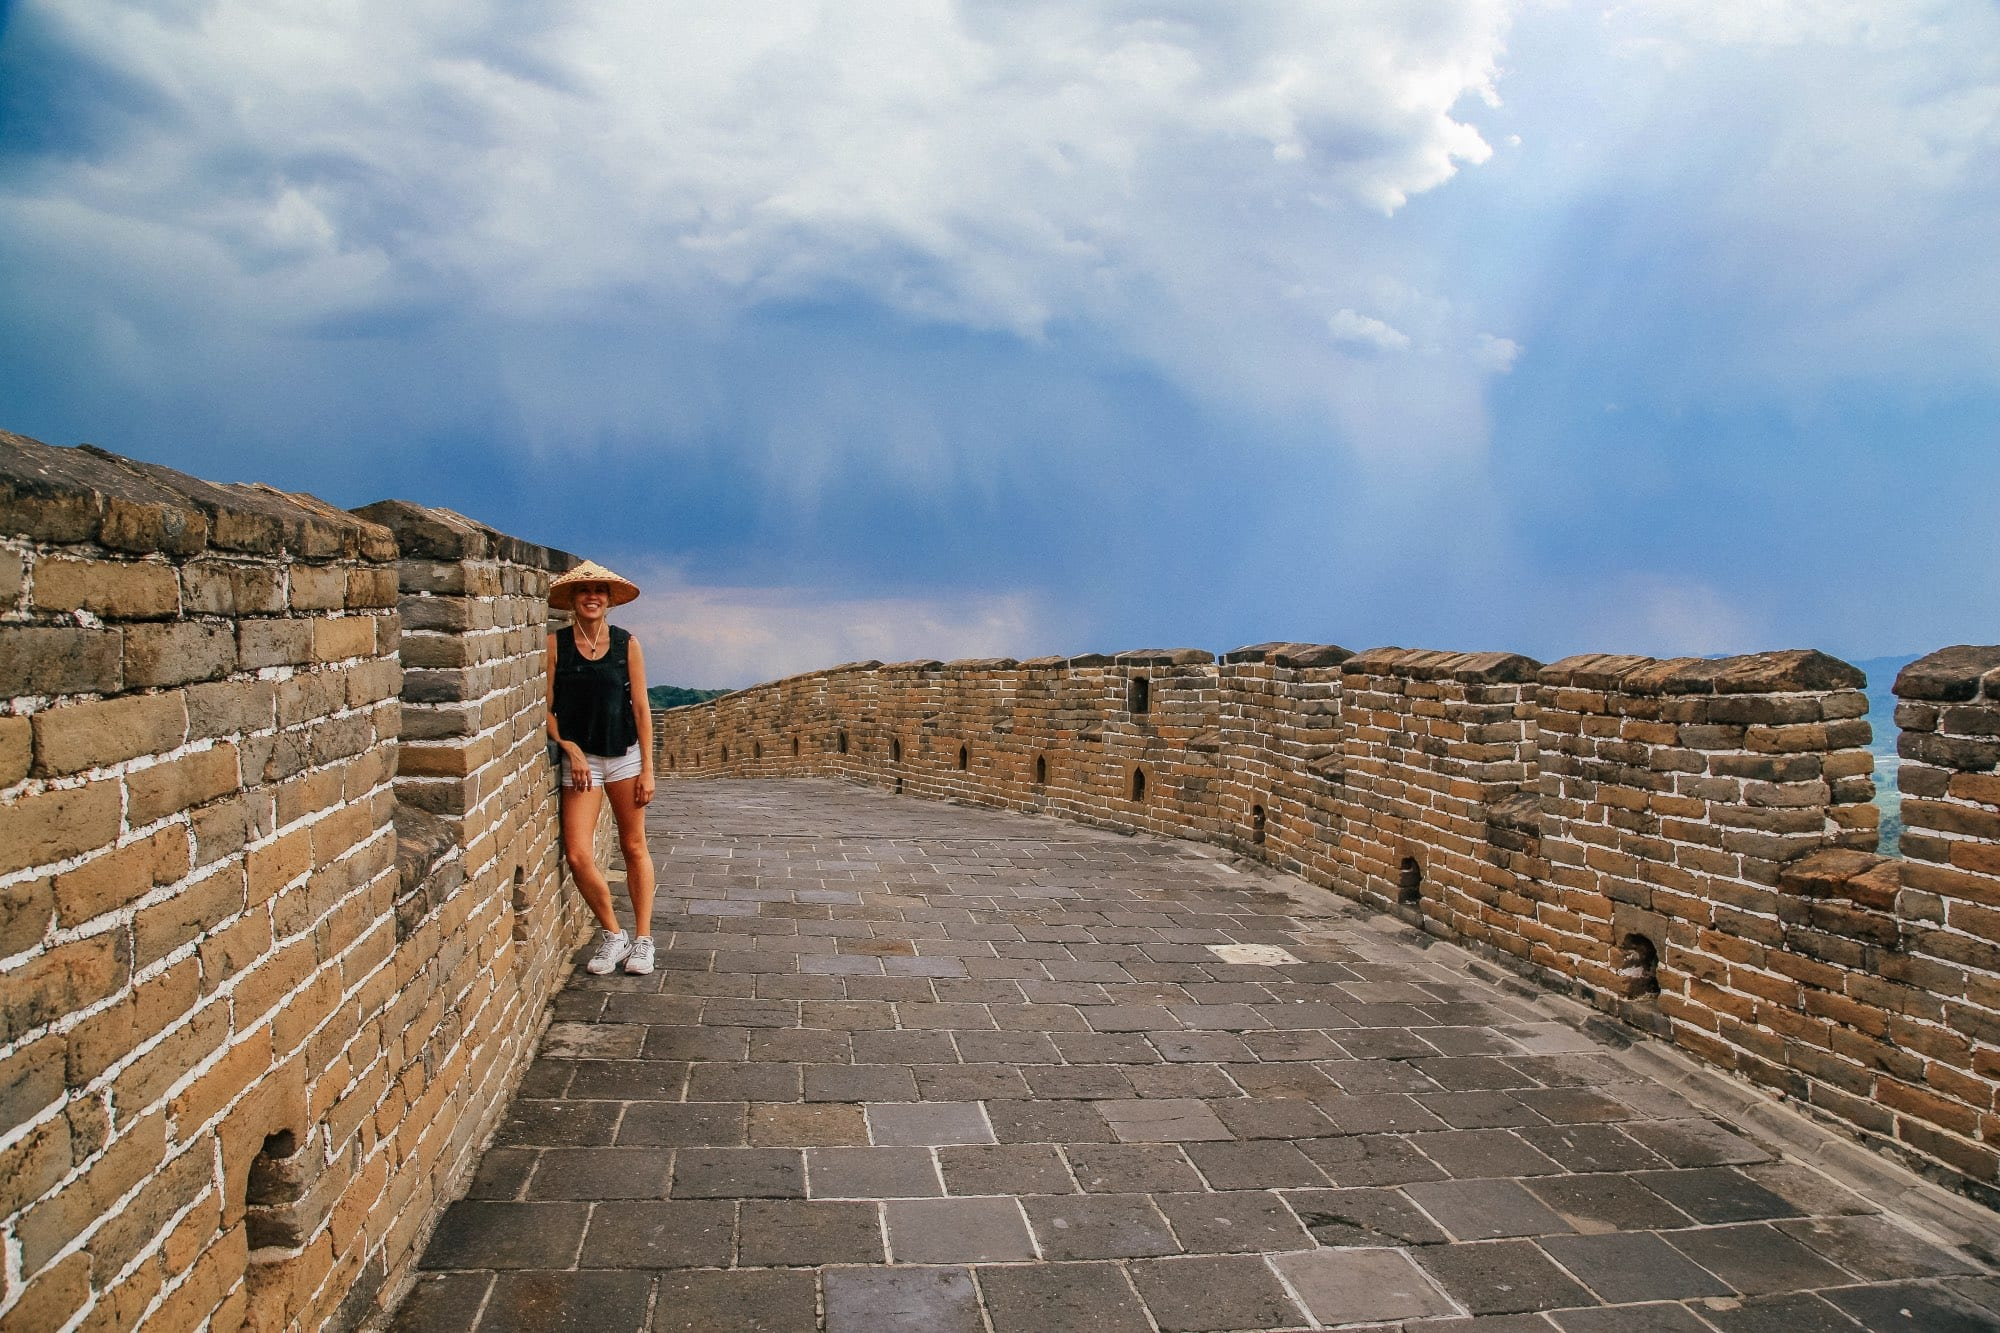 Hiking on the Great Wall of China